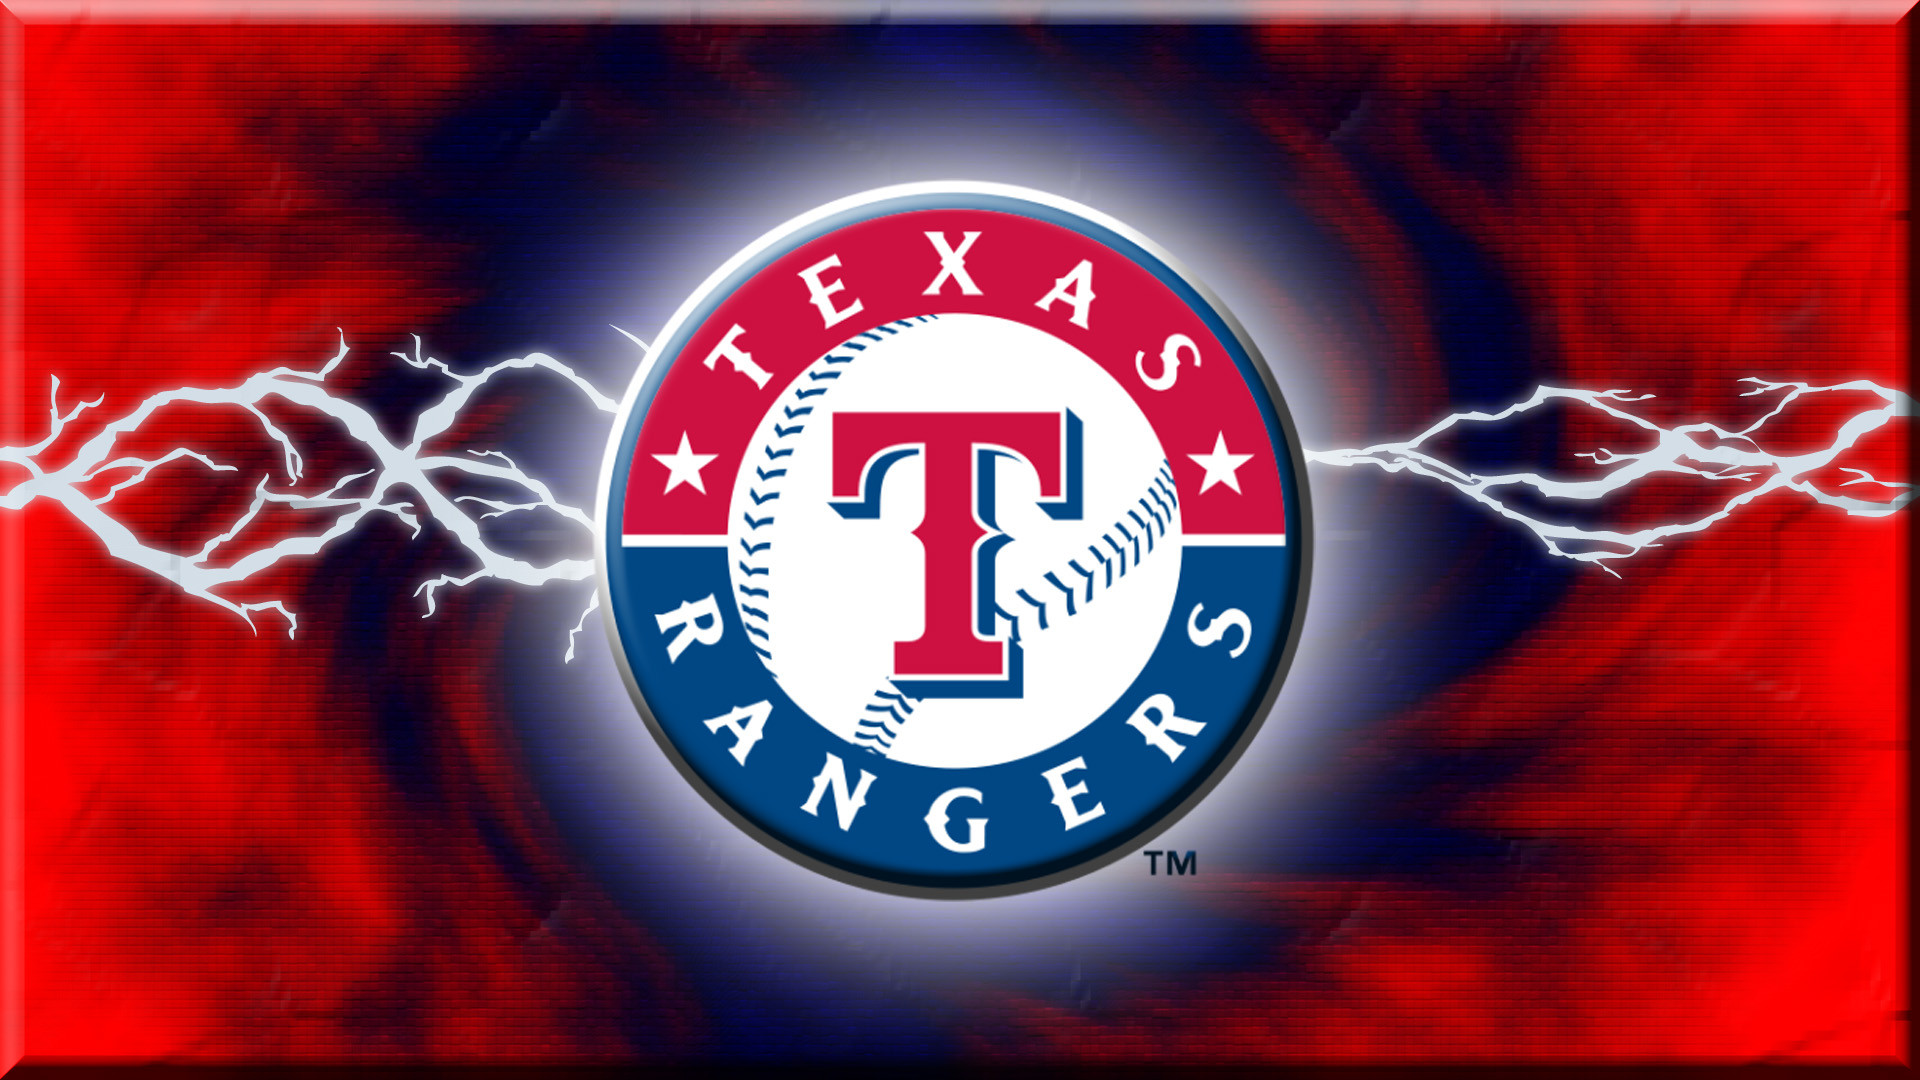 Download Texas Rangers wallpapers to your cell phone america | HD Wallpapers  | Pinterest | Wallpaper and Wallpaper backgrounds